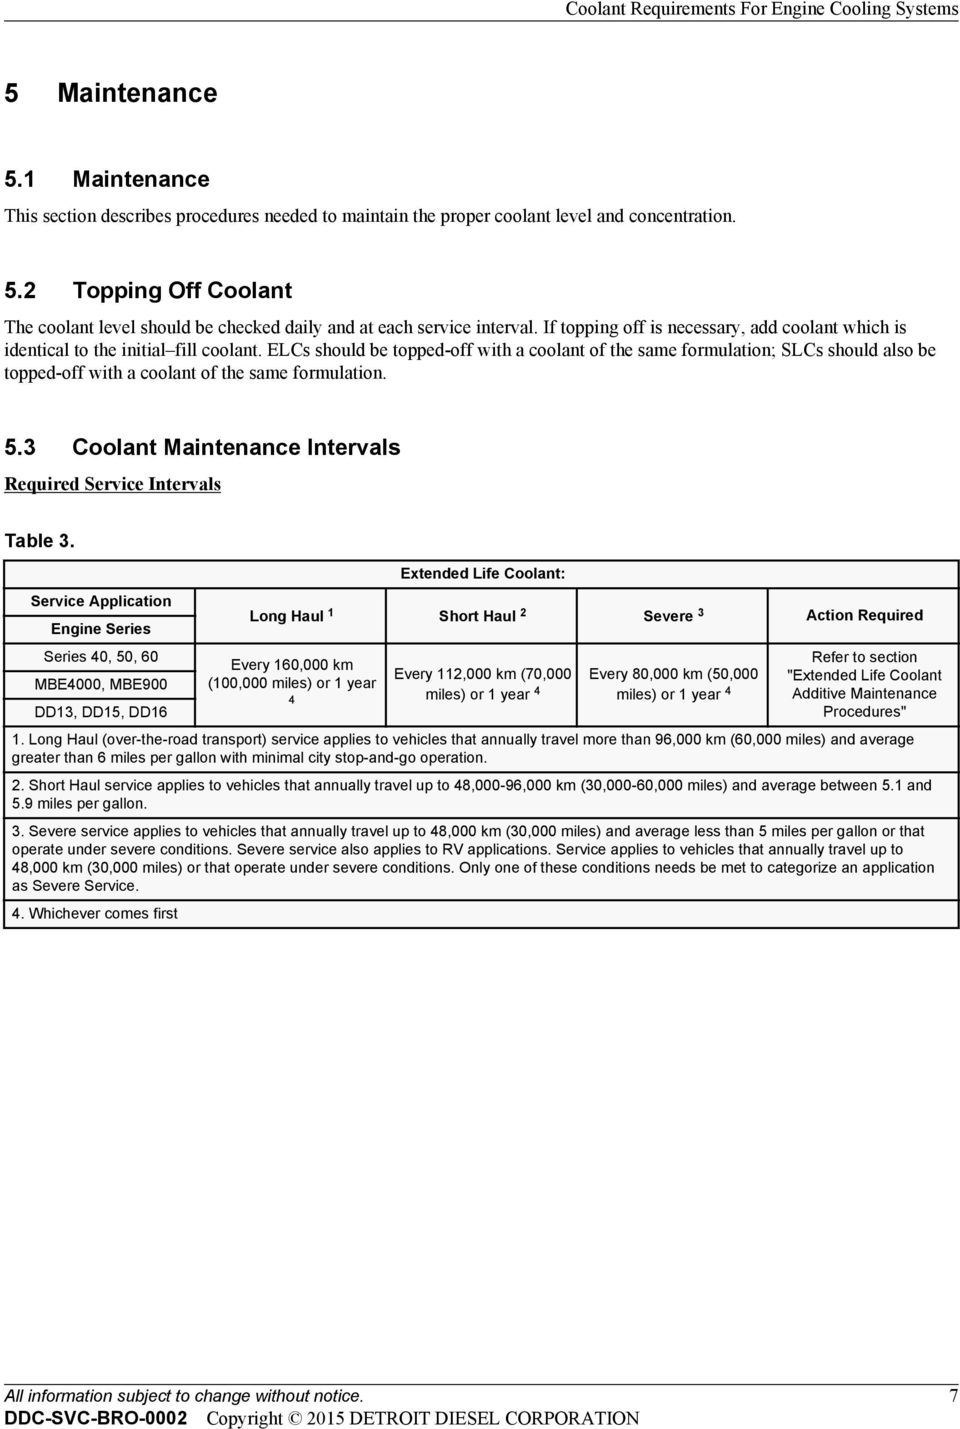 Coolant Requirements For Engine Cooling Systems - PDF